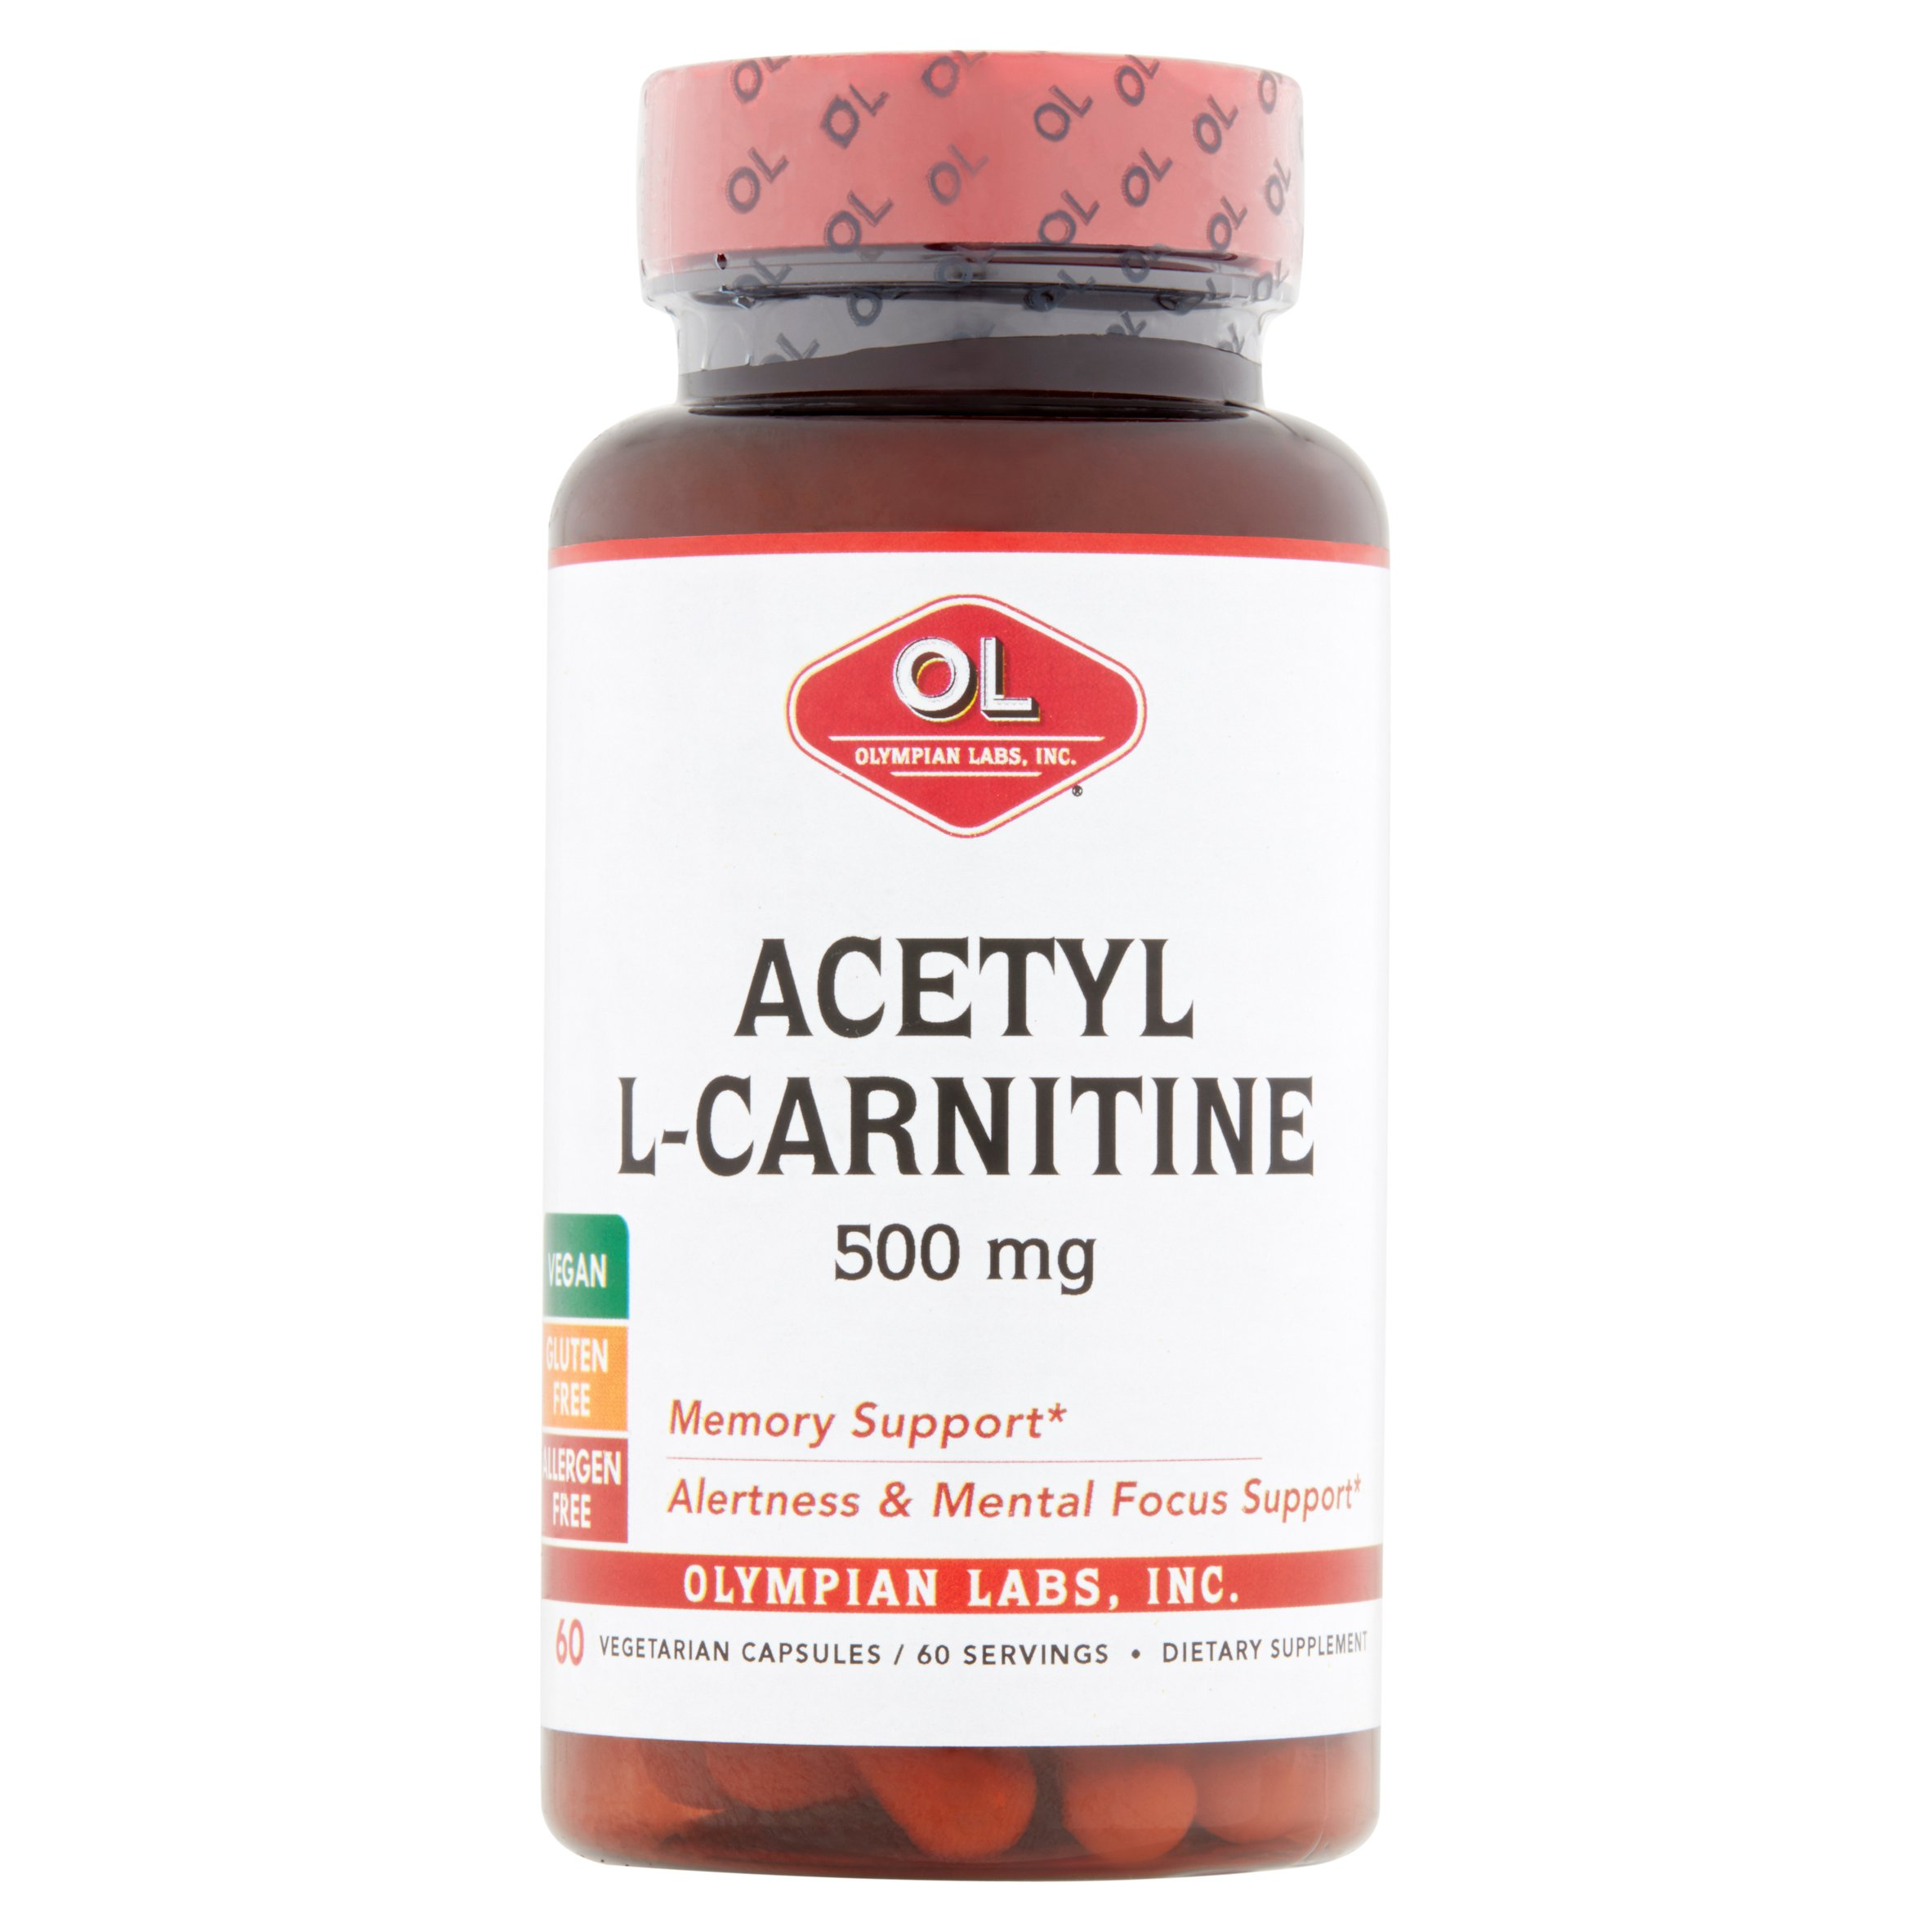 Olympian Labs Inc. Acetyl L-Carnitine Vegetarian Capsules, 500 mg, 60 count